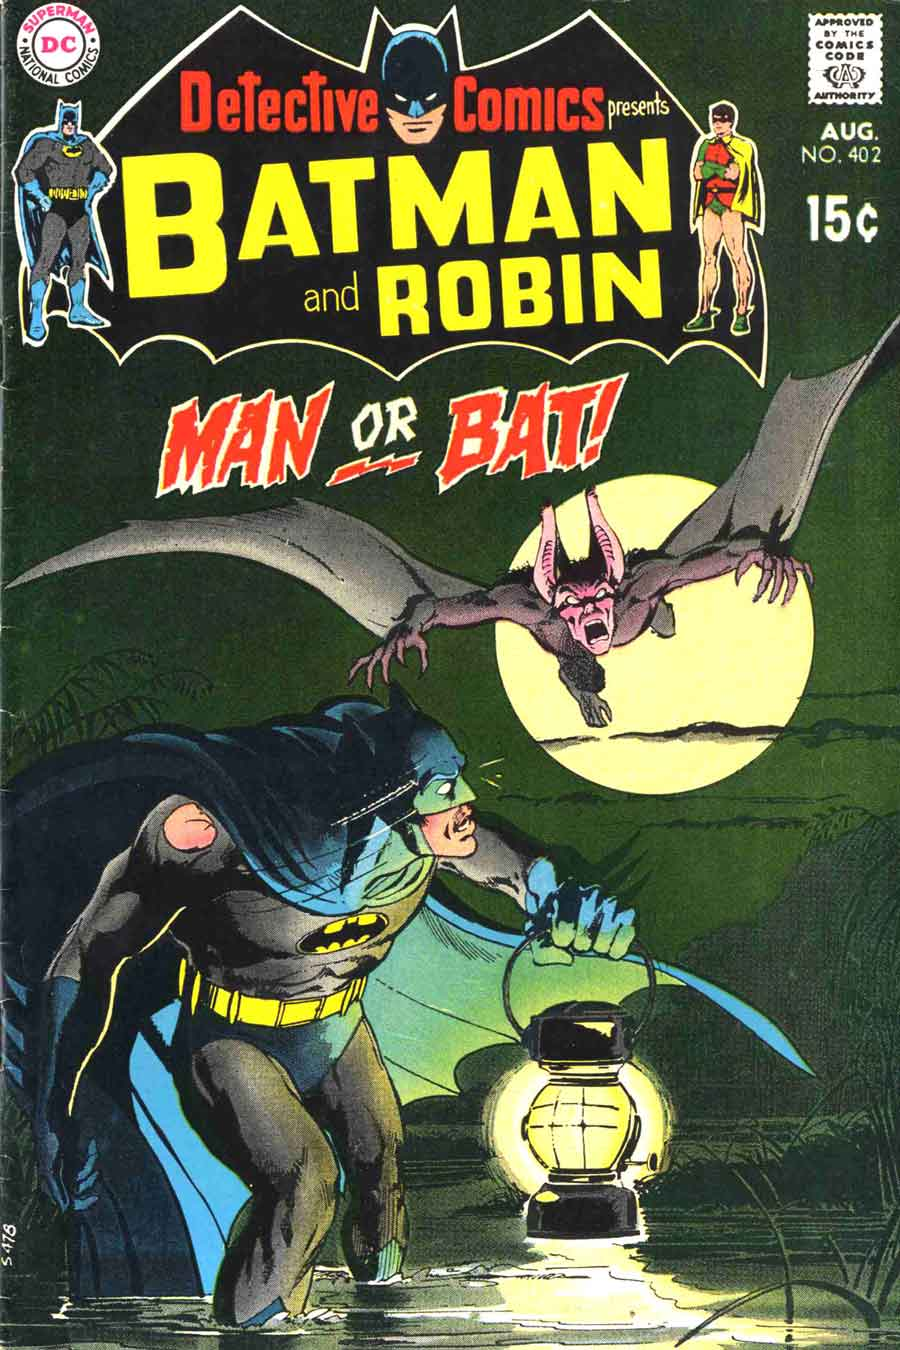 Detective Comics #402 dc Batman comic book cover art by Neal Adams